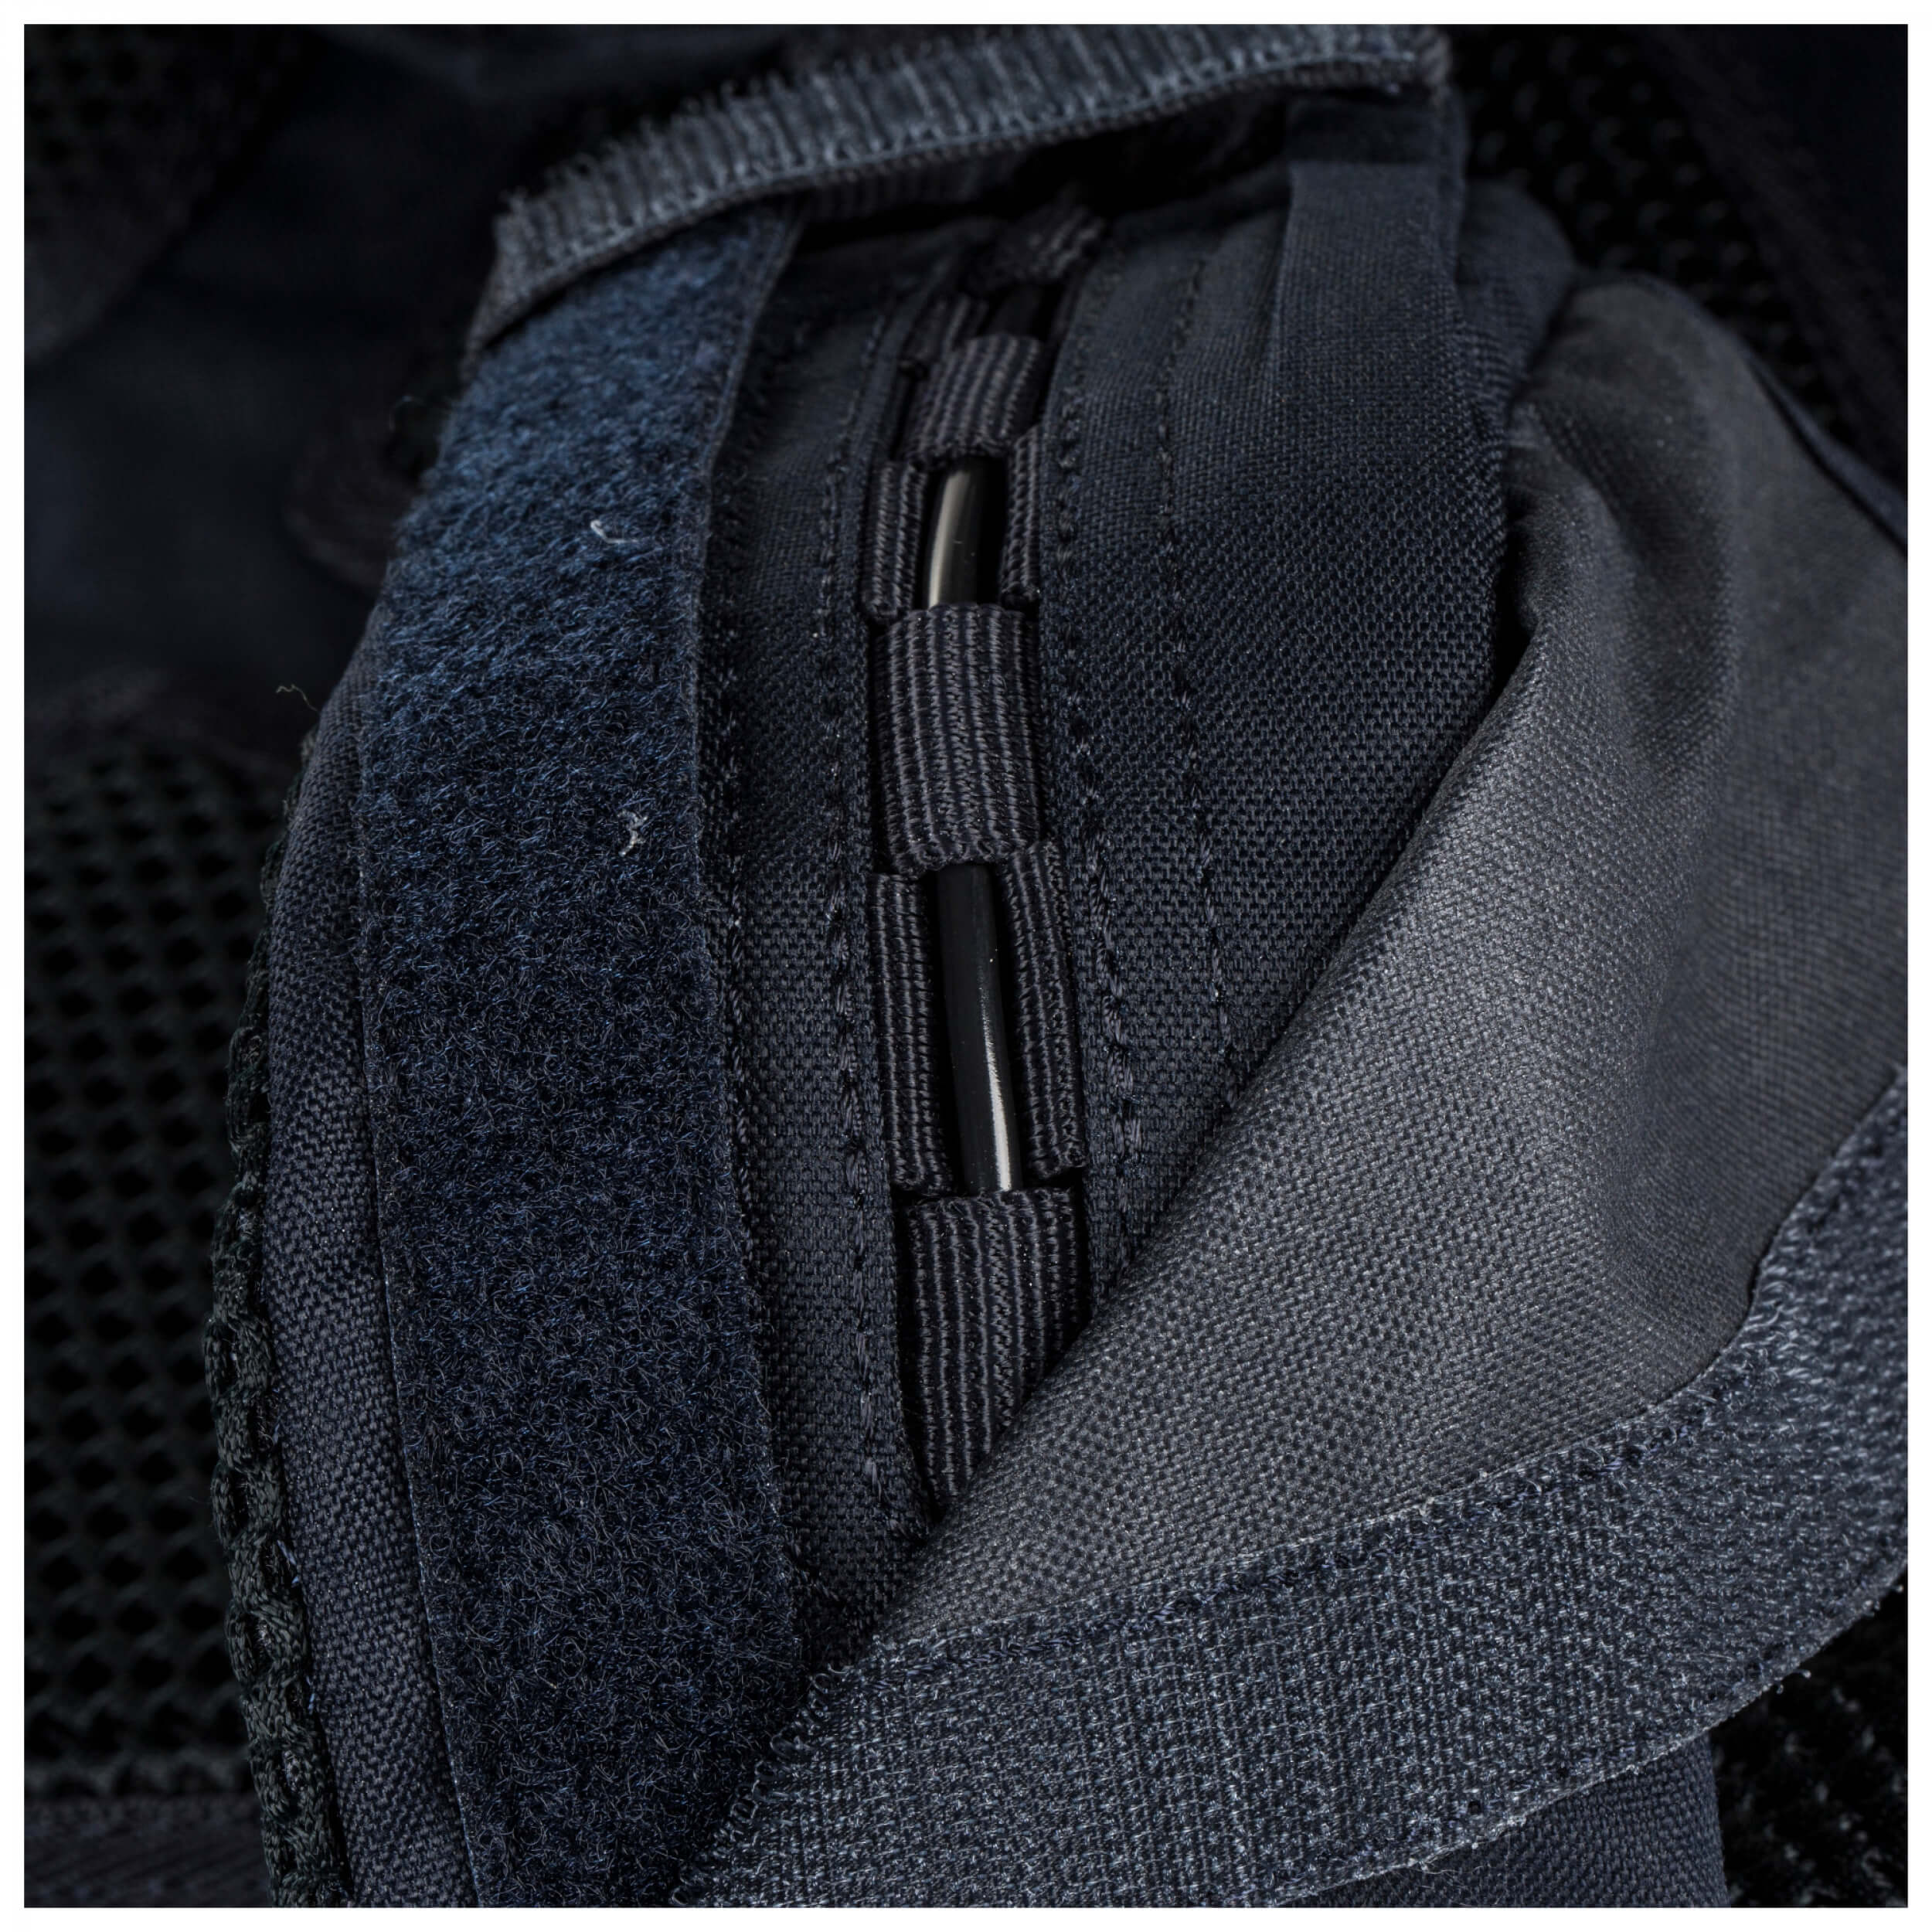 5.11 Tactical TacTec Plate Carrier Black